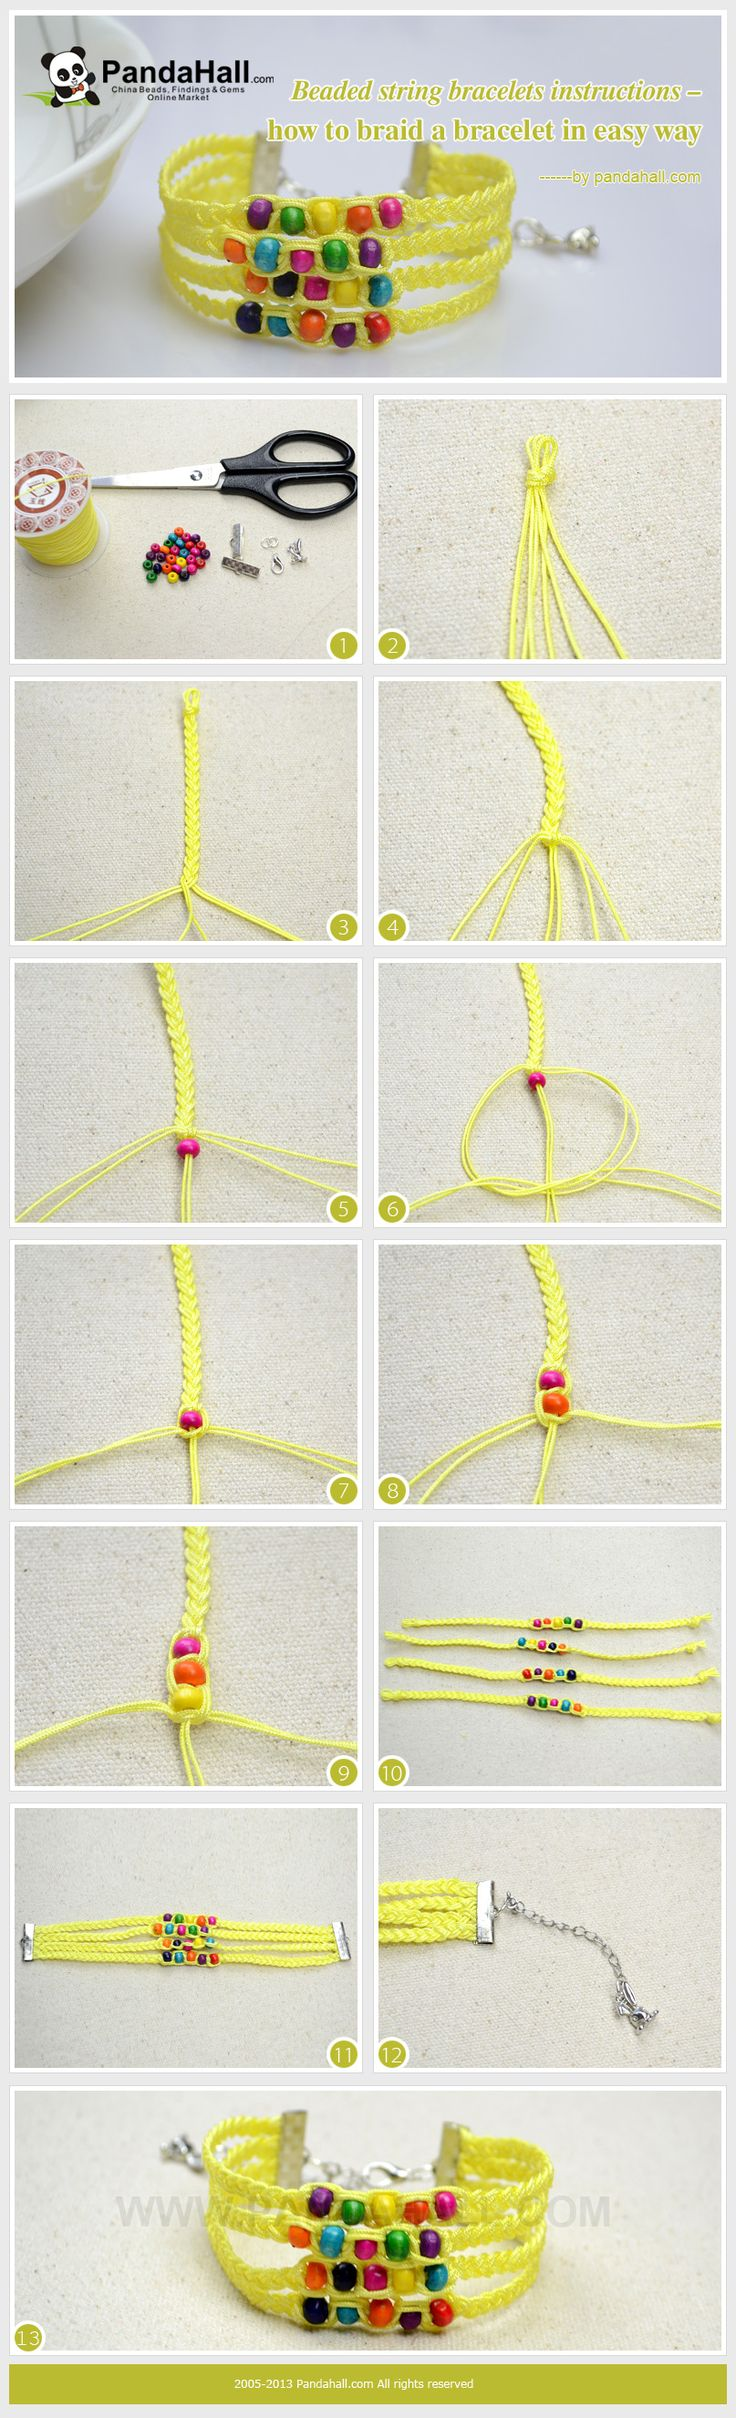 I will show you a unique way for how to make a braided bracelet with wooden beads, even a primary learner can complement is separately and easily.